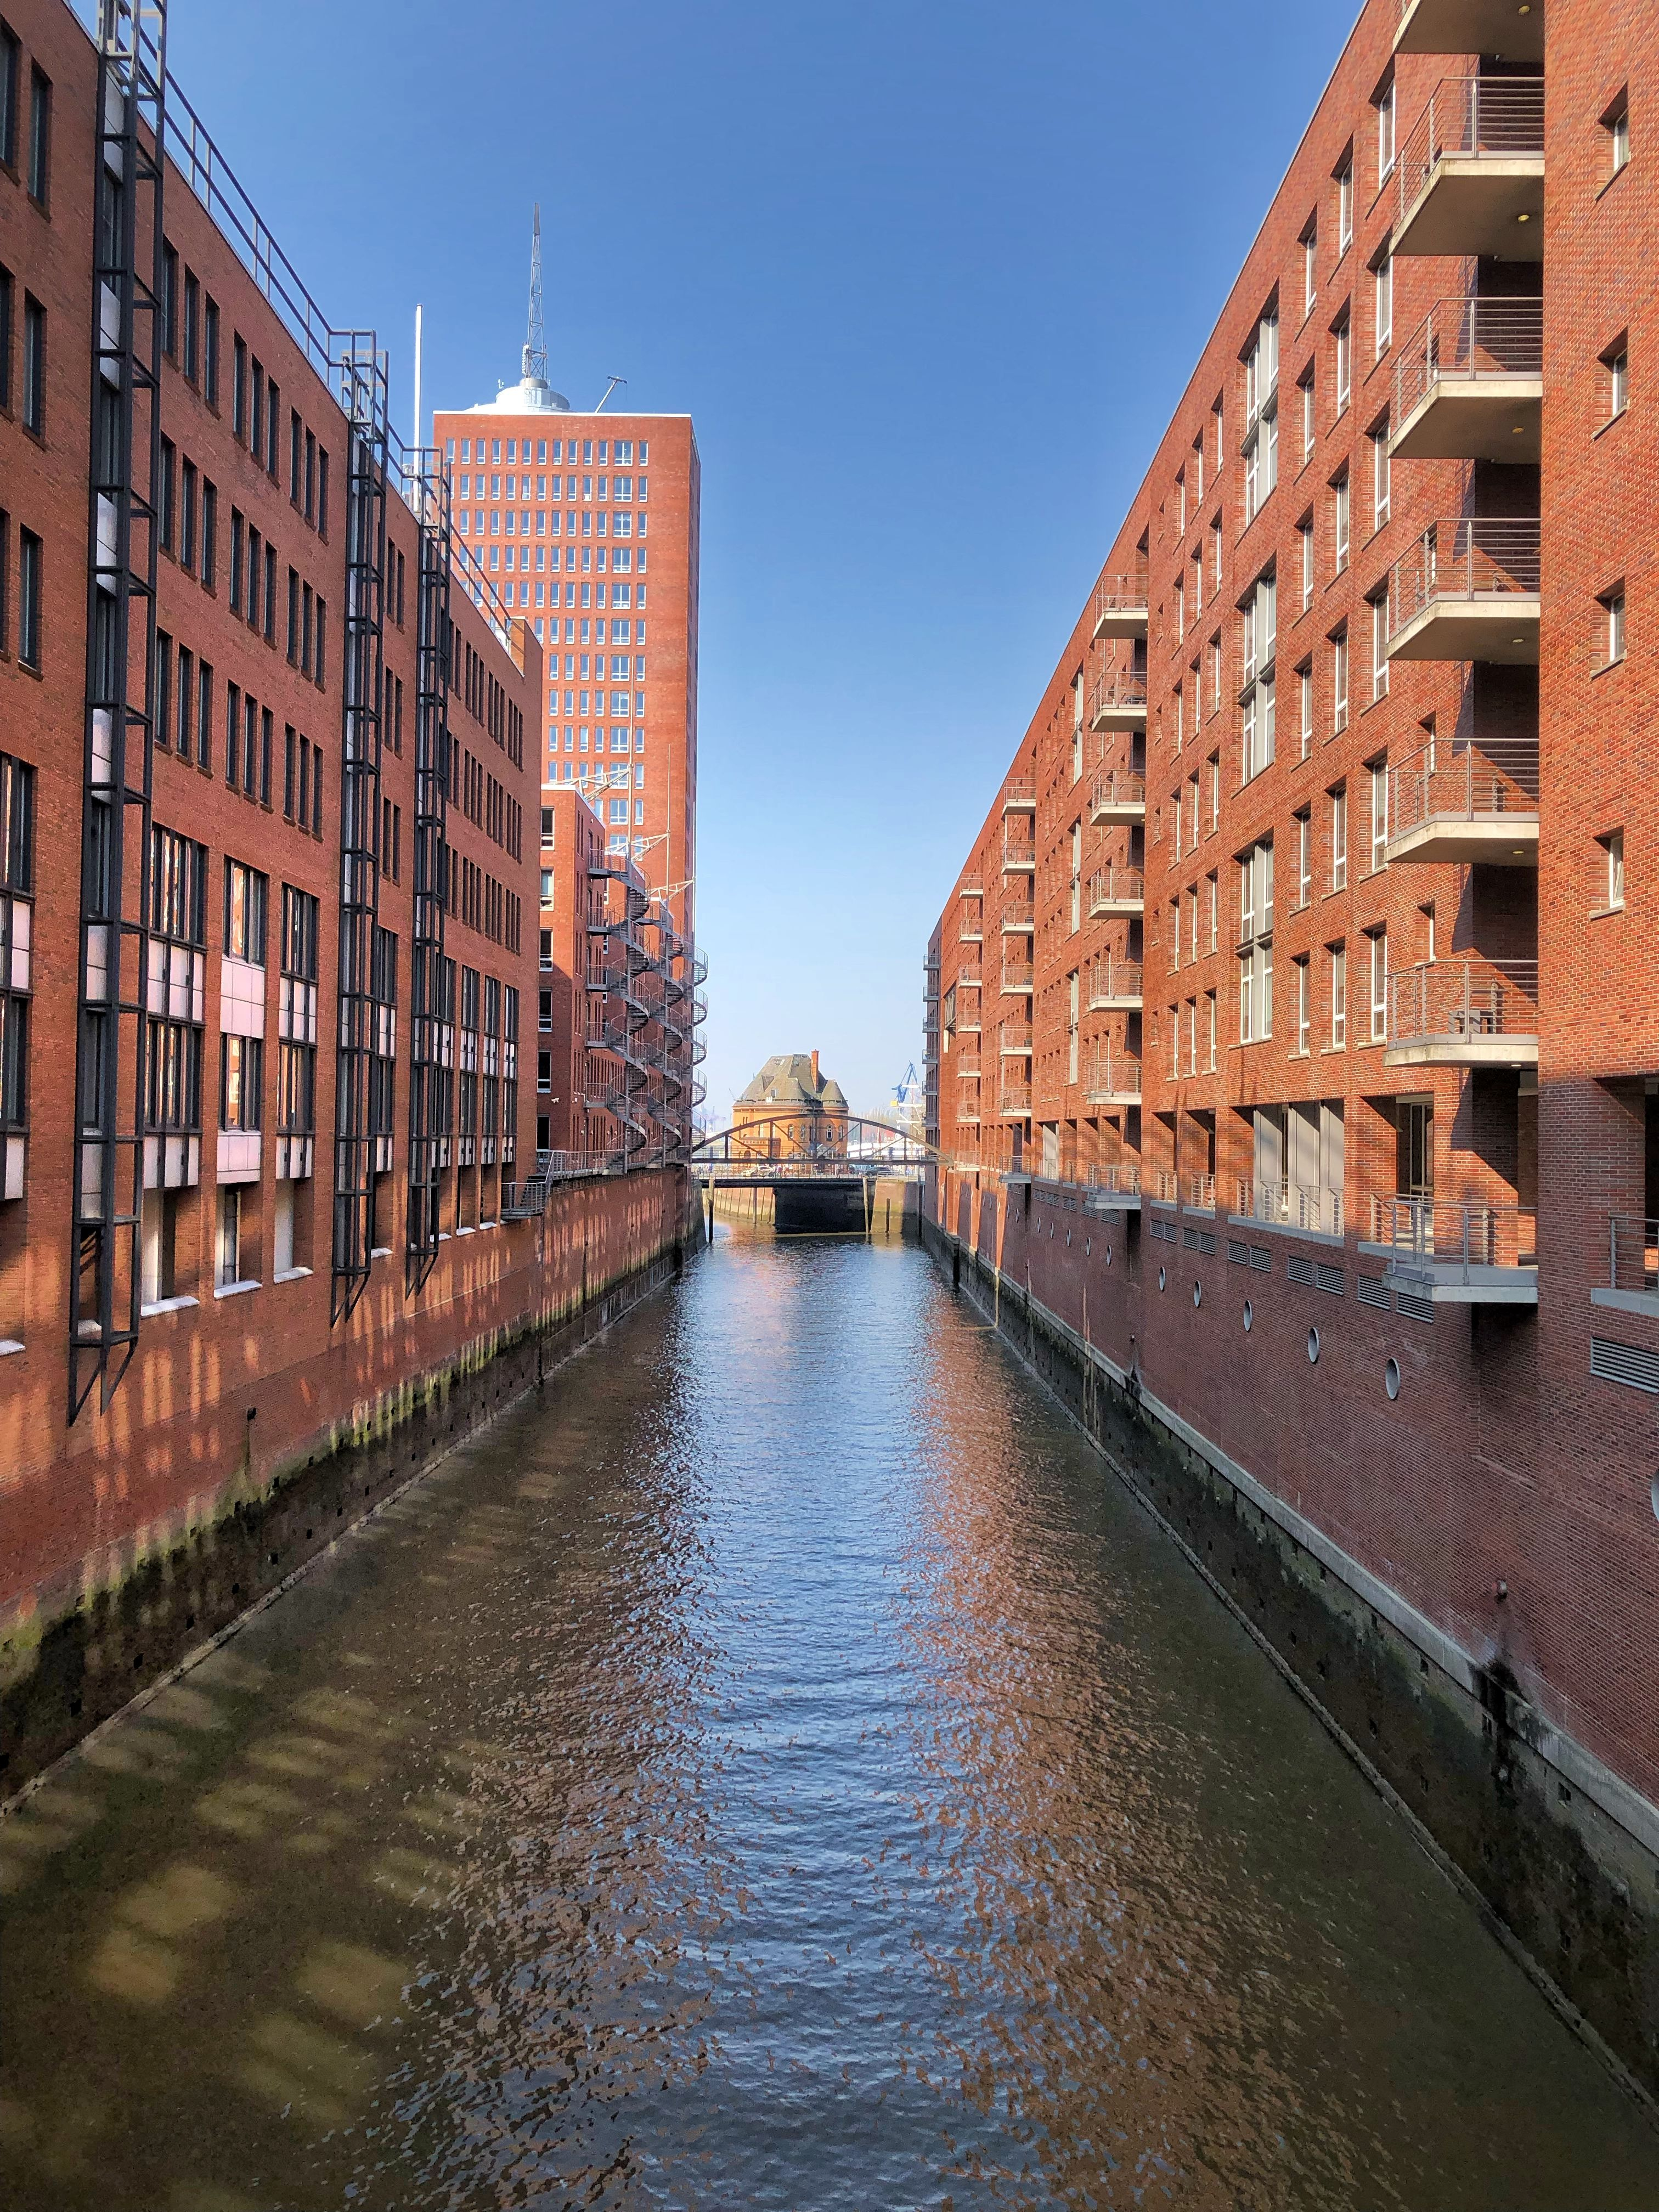 Pin By Sofiya Myronets On Hamburg Canal Structures Building